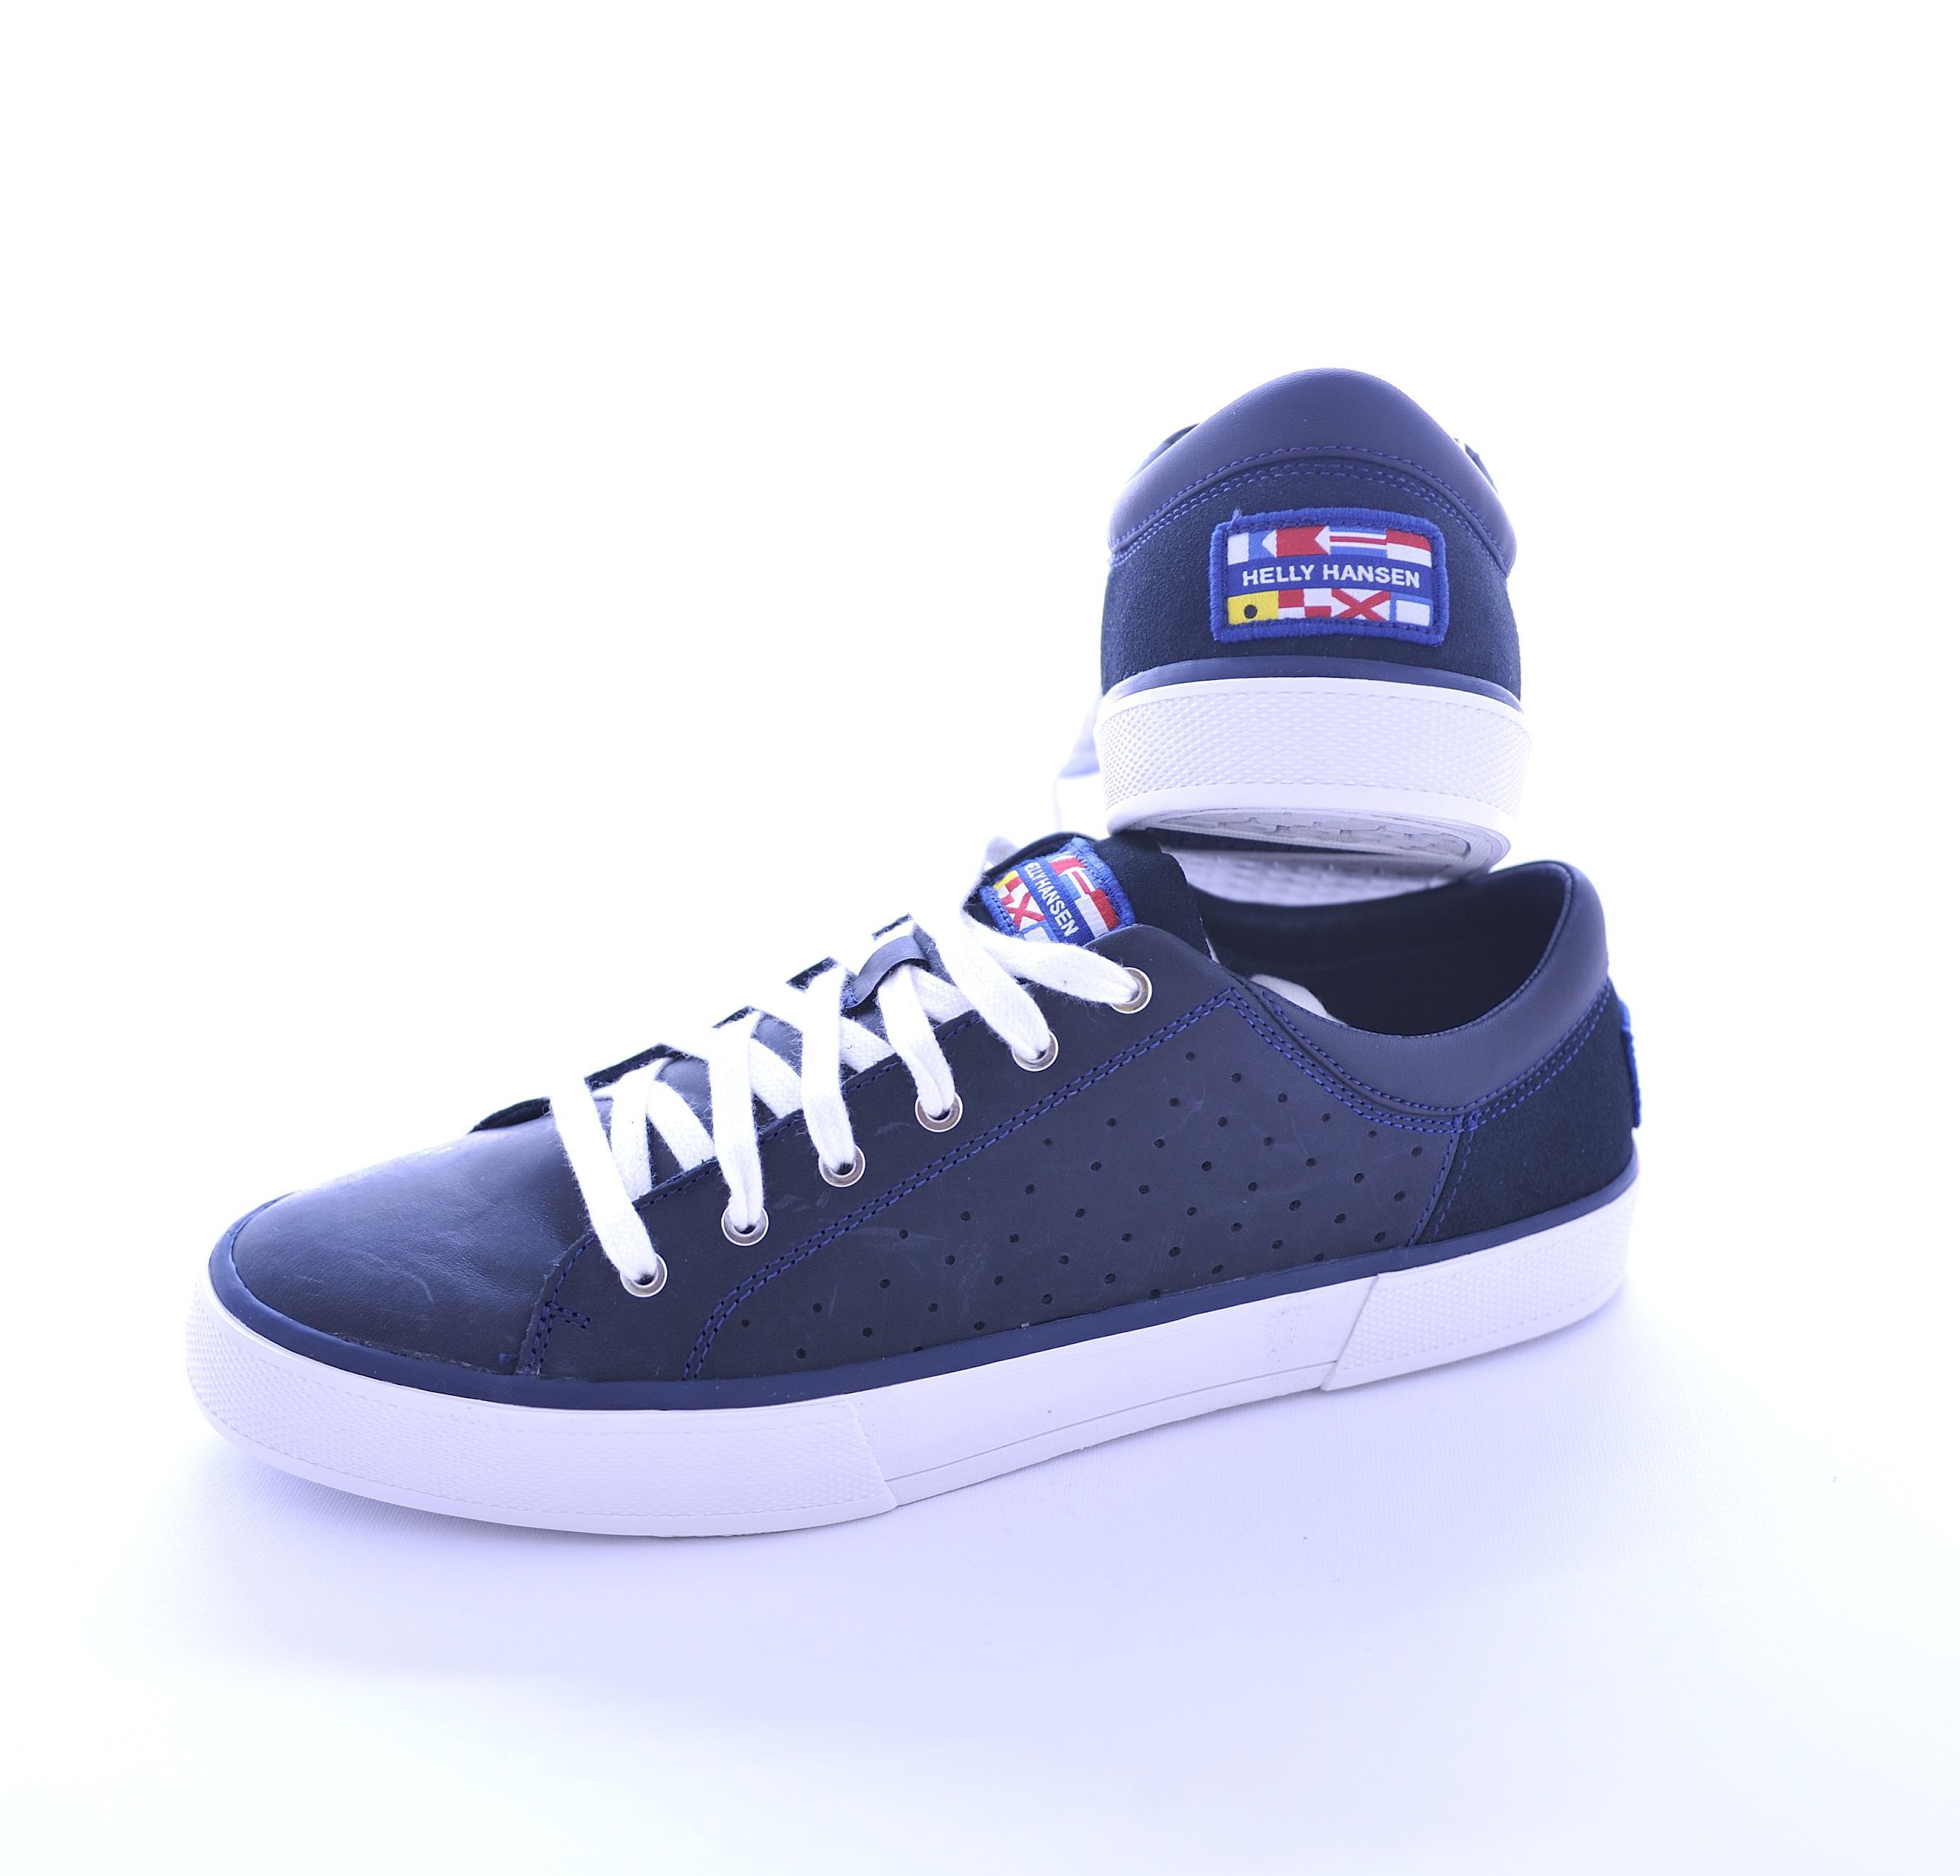 Picture of Blue leather sneaker